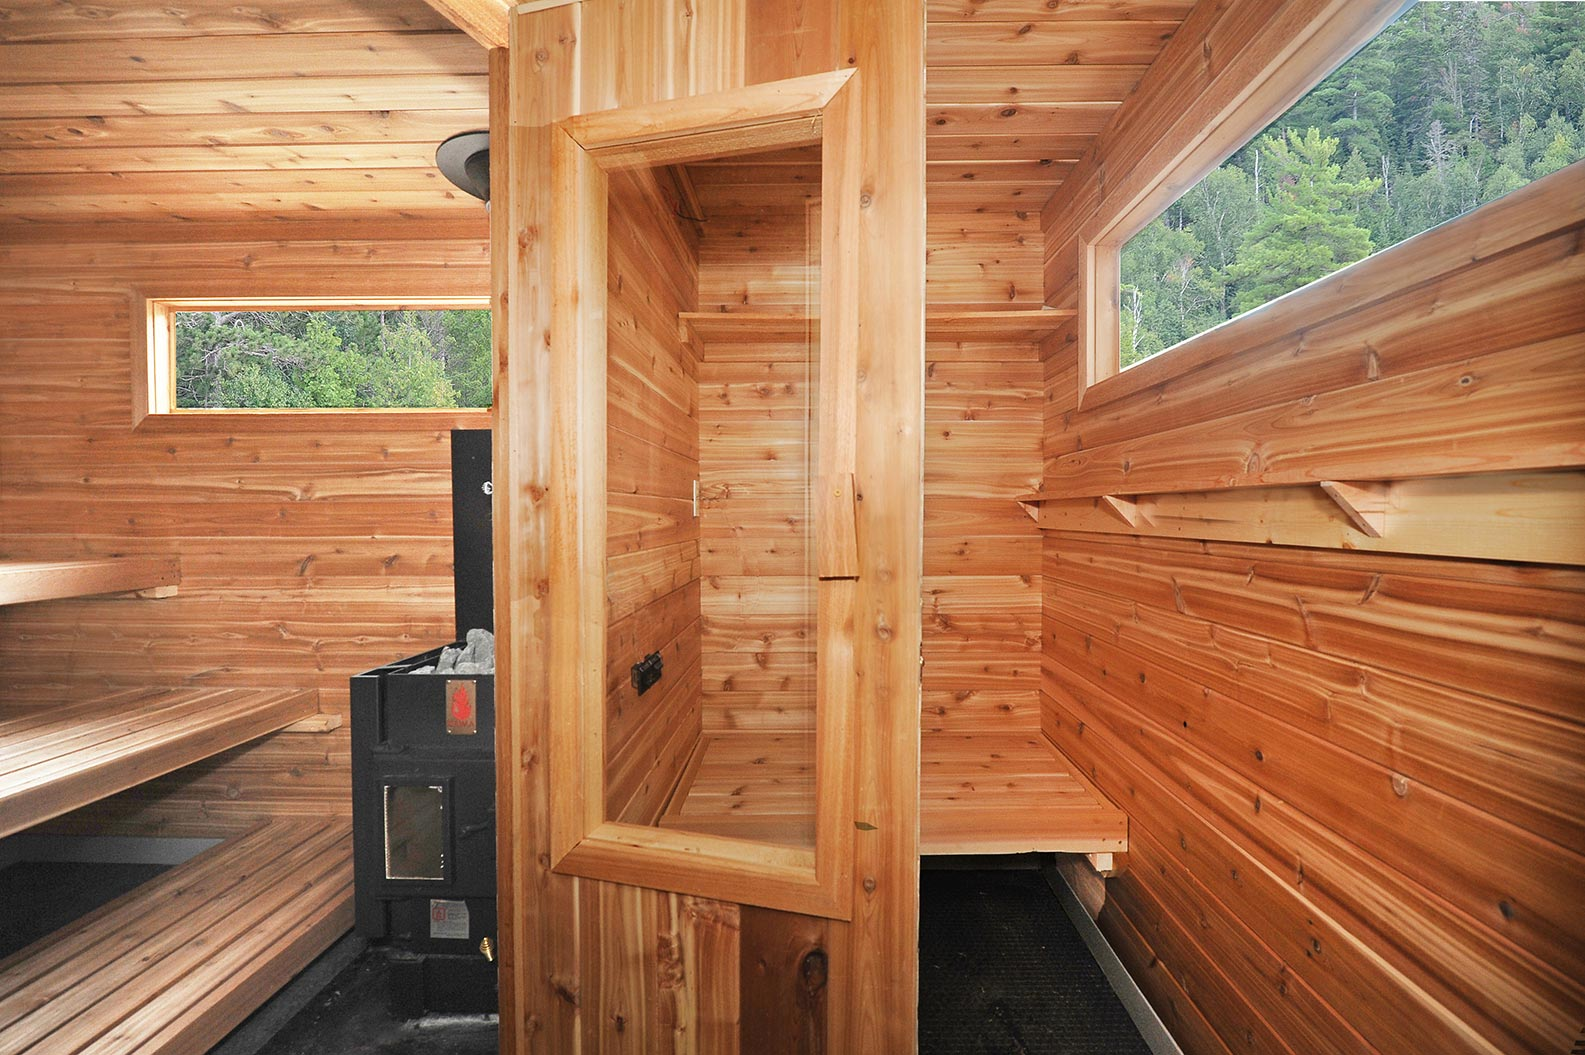 Mobile sauna window fogged up from outside